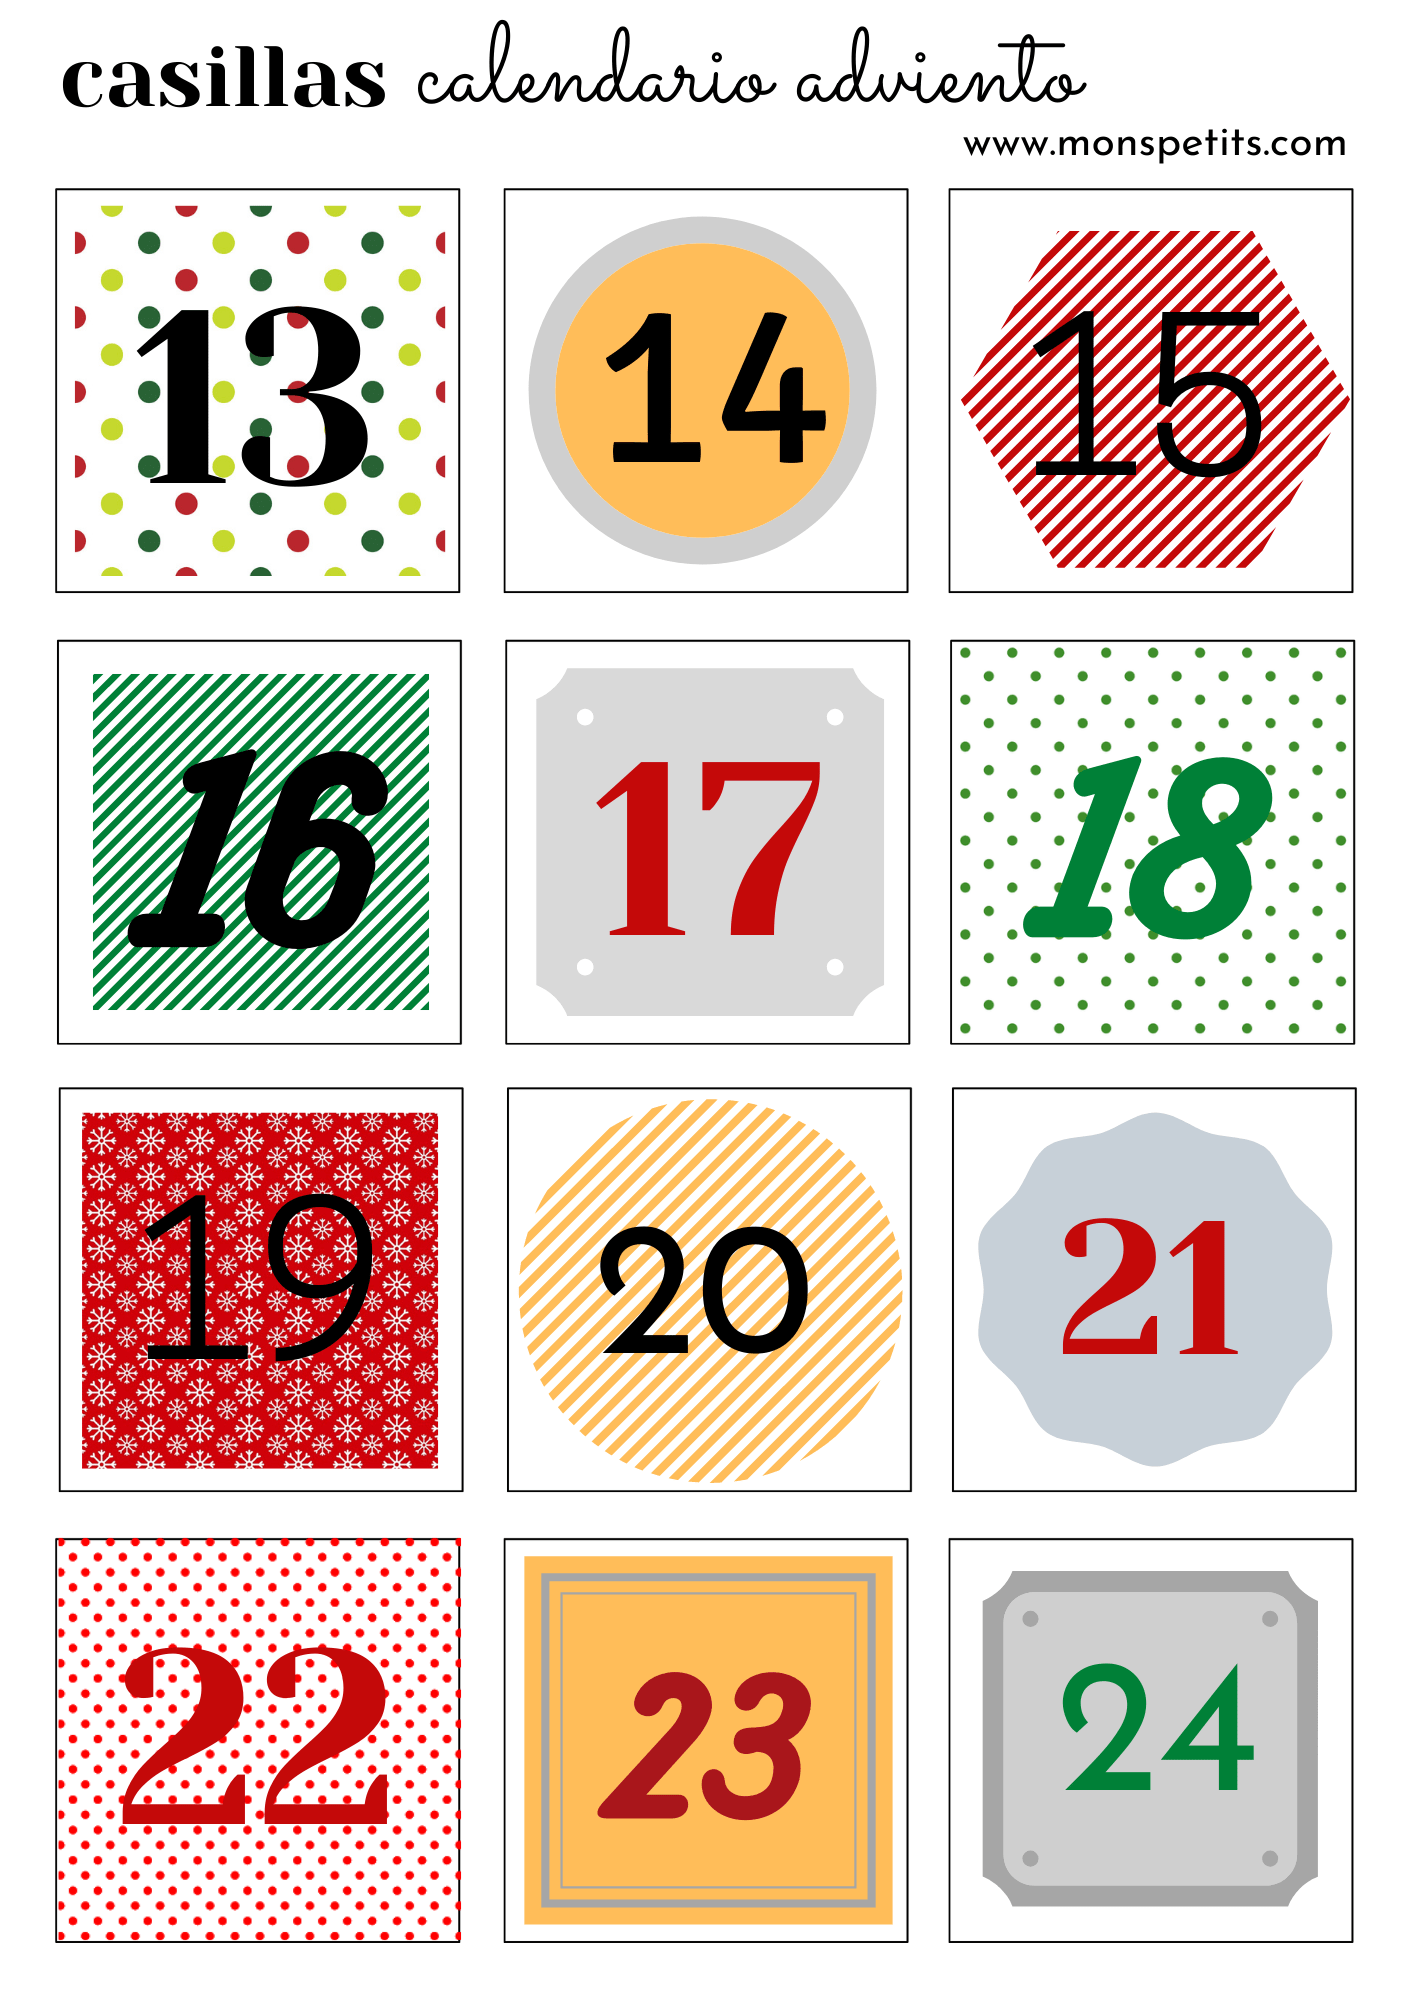 Casillas para Calendario Adviento - Numeros - Descargable imprimible gratis en pdf 2